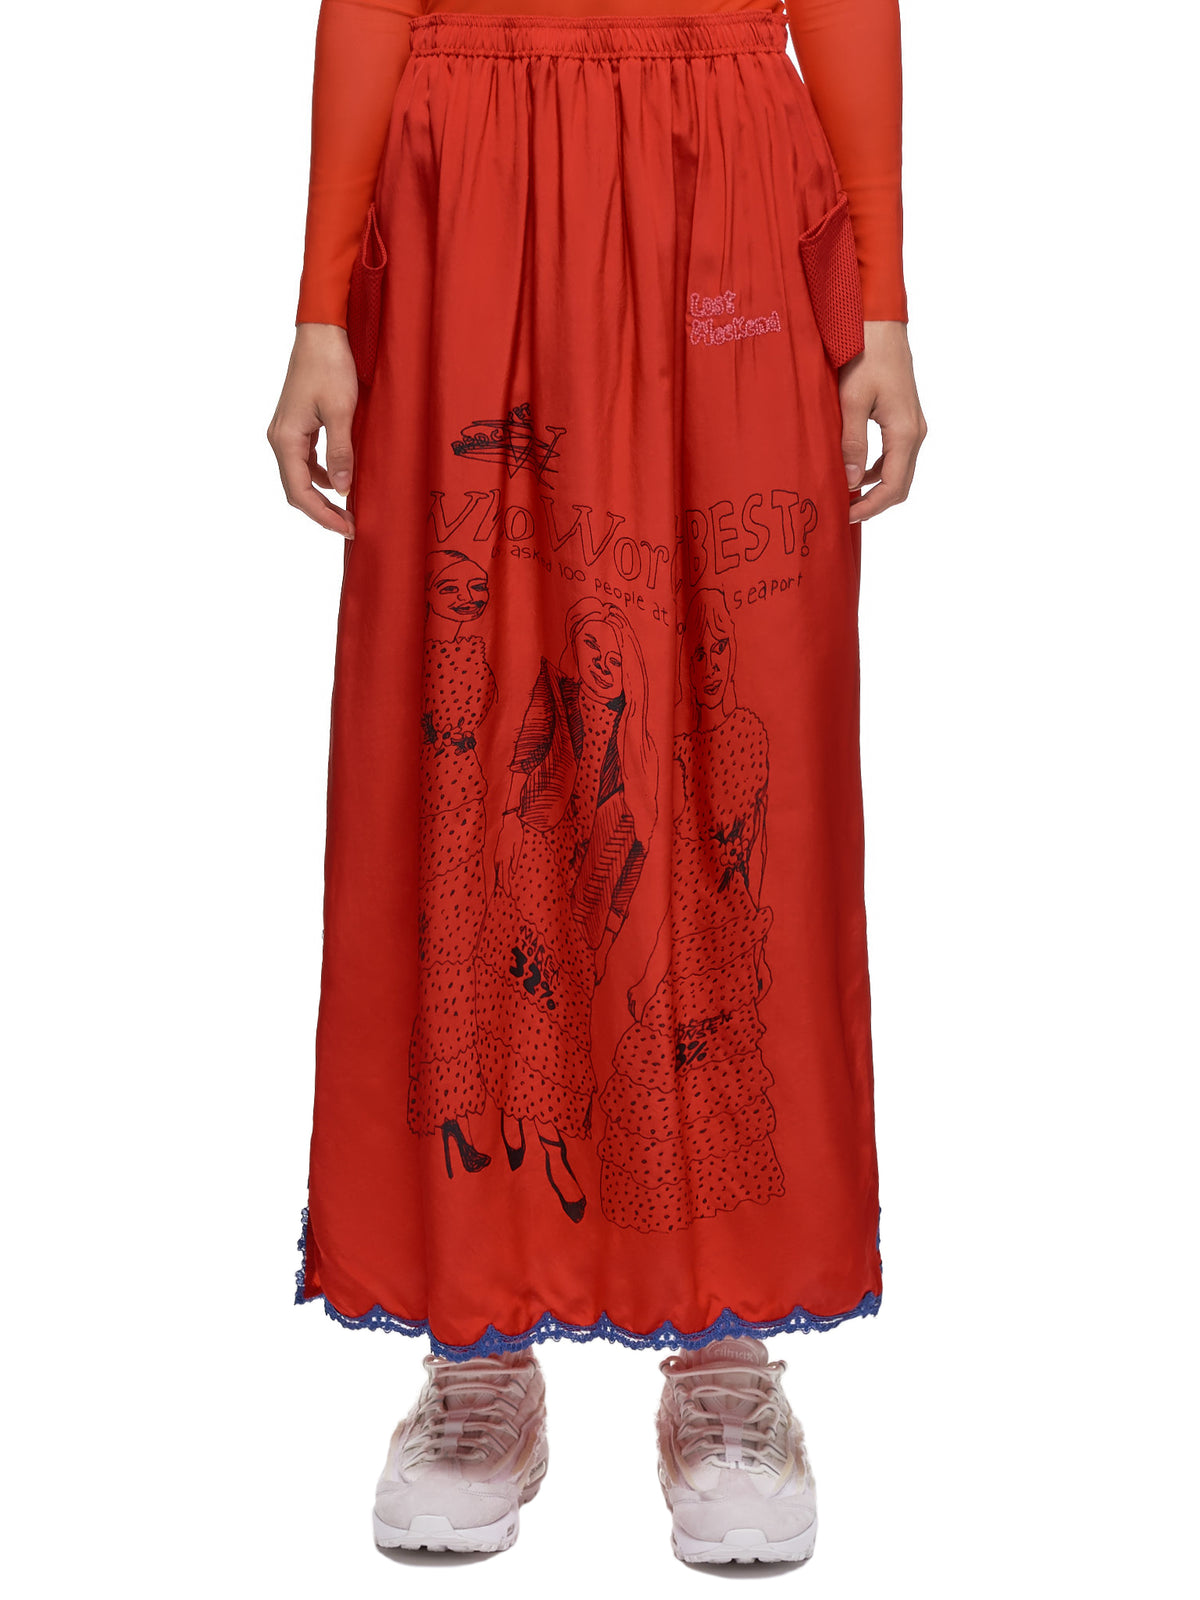 Lost Weekend Lace Trimmed Maxi Skirt (46-WWB-RED)